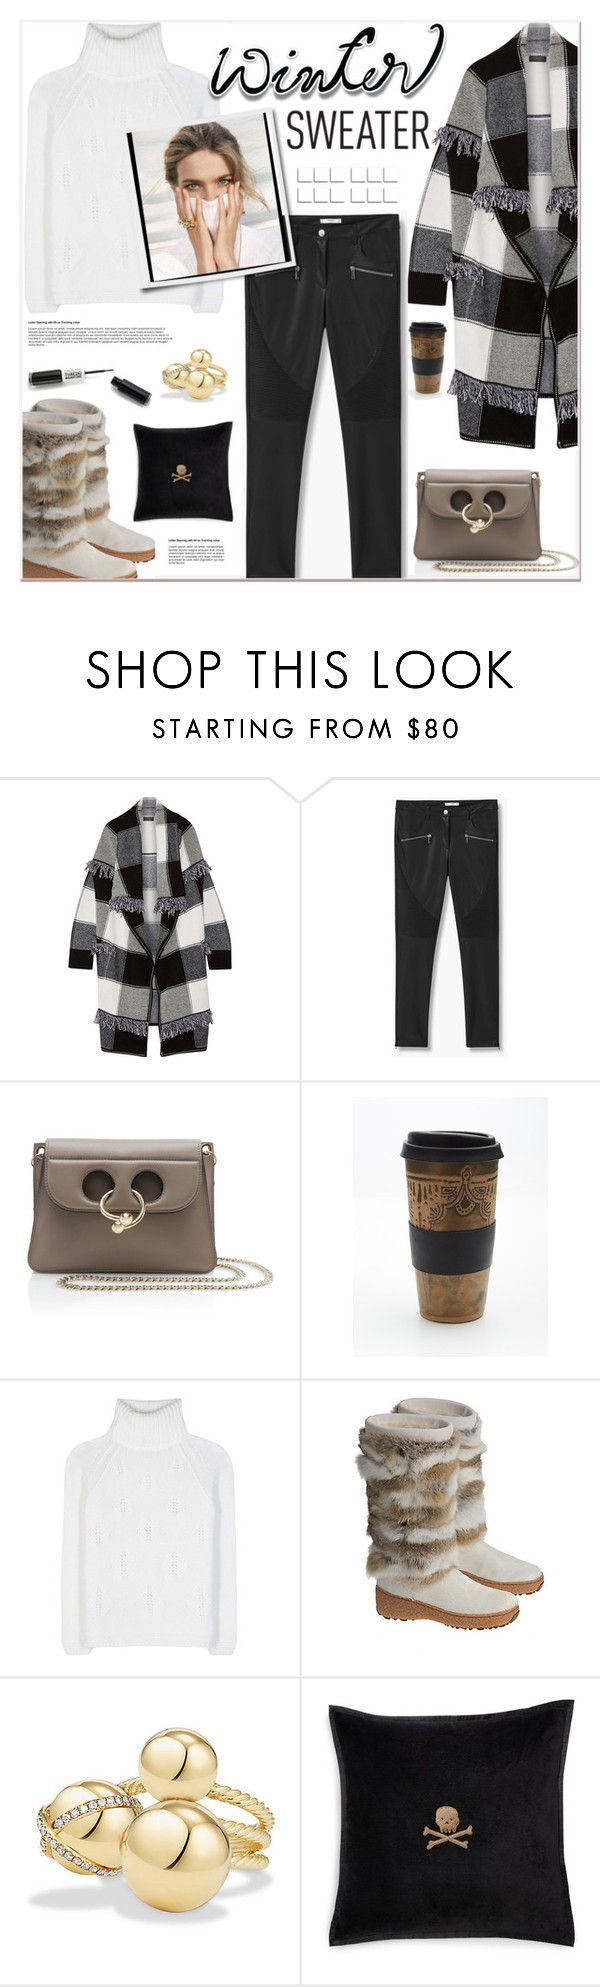 """Winter Sweater"" by watereverysunday ❤ liked on Polyvore featuring Burberry, MANGO, J.W. Anderson, Free People, Loro Piana, Overland Sheepskin Co., David Yurman, Ralph Lauren and wintersweater"